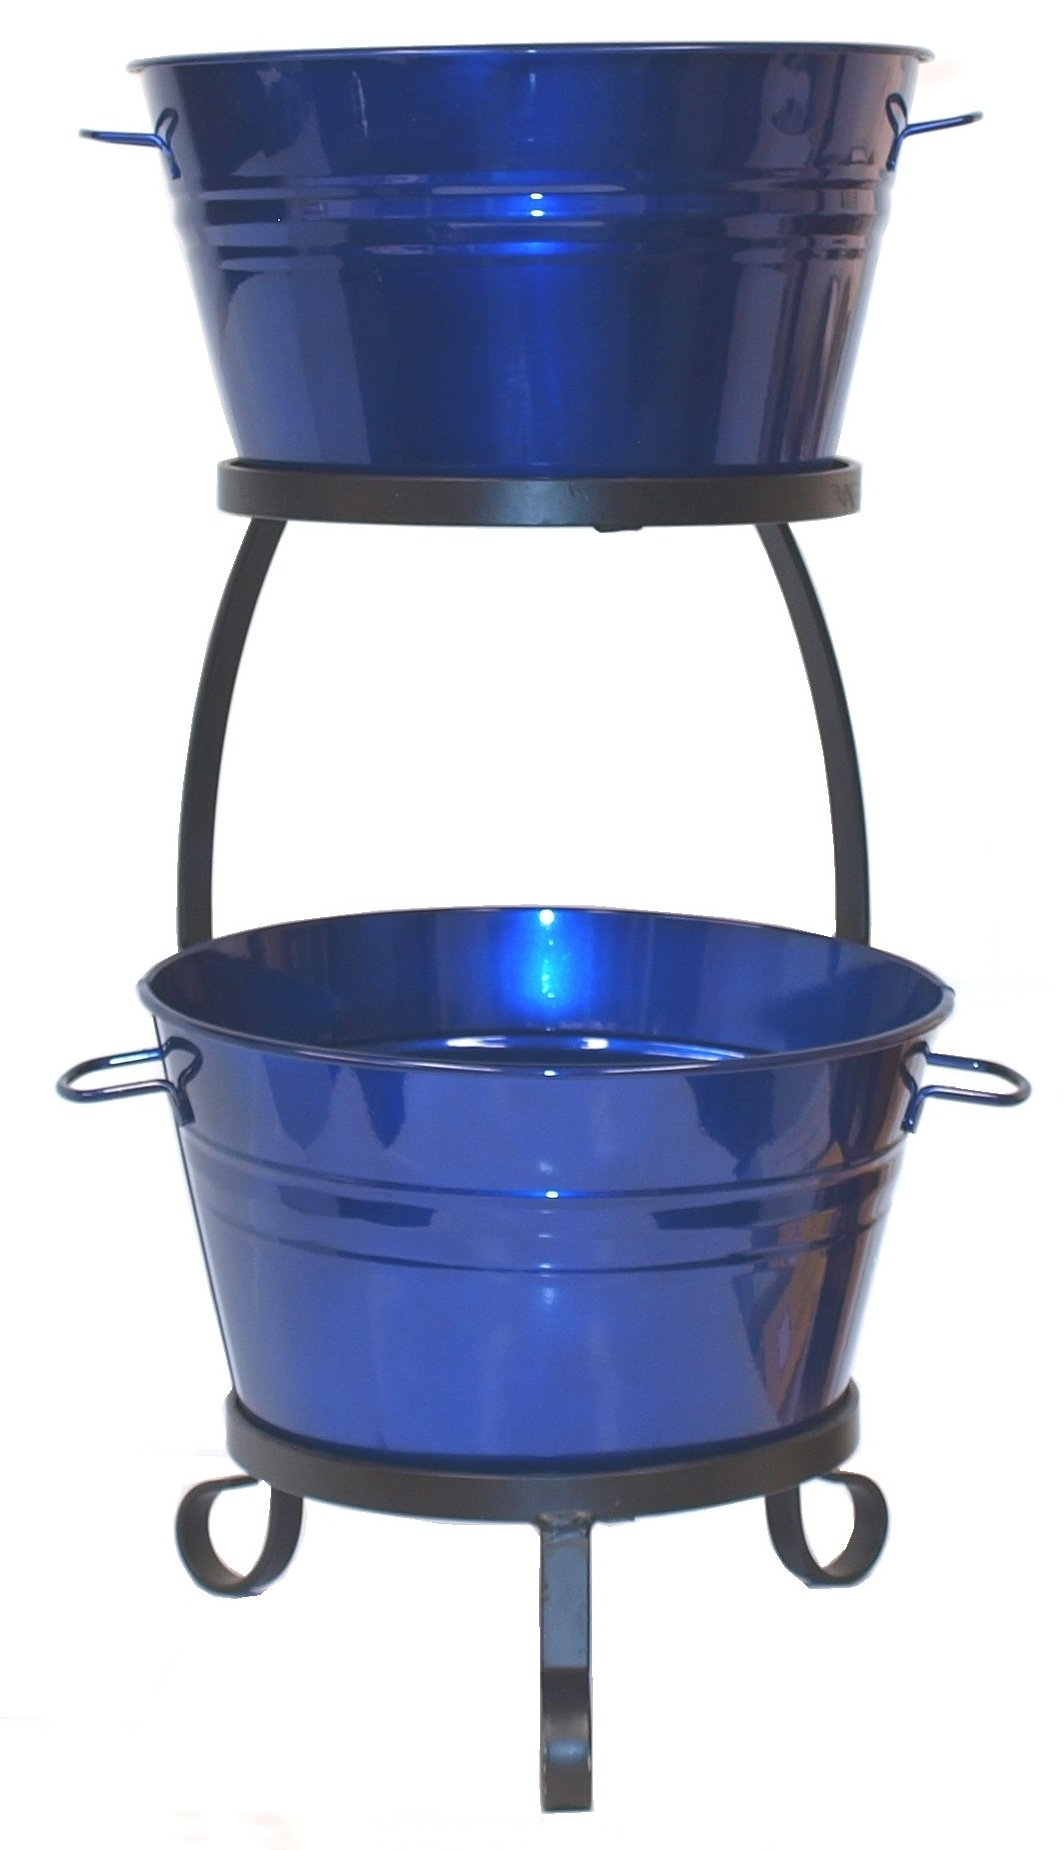 HIT 8020E GB Galvanized Heavy Gauge Steel Beverage Tub with Iron Stand, 13.5 by 30-Inch, Glazed Blue